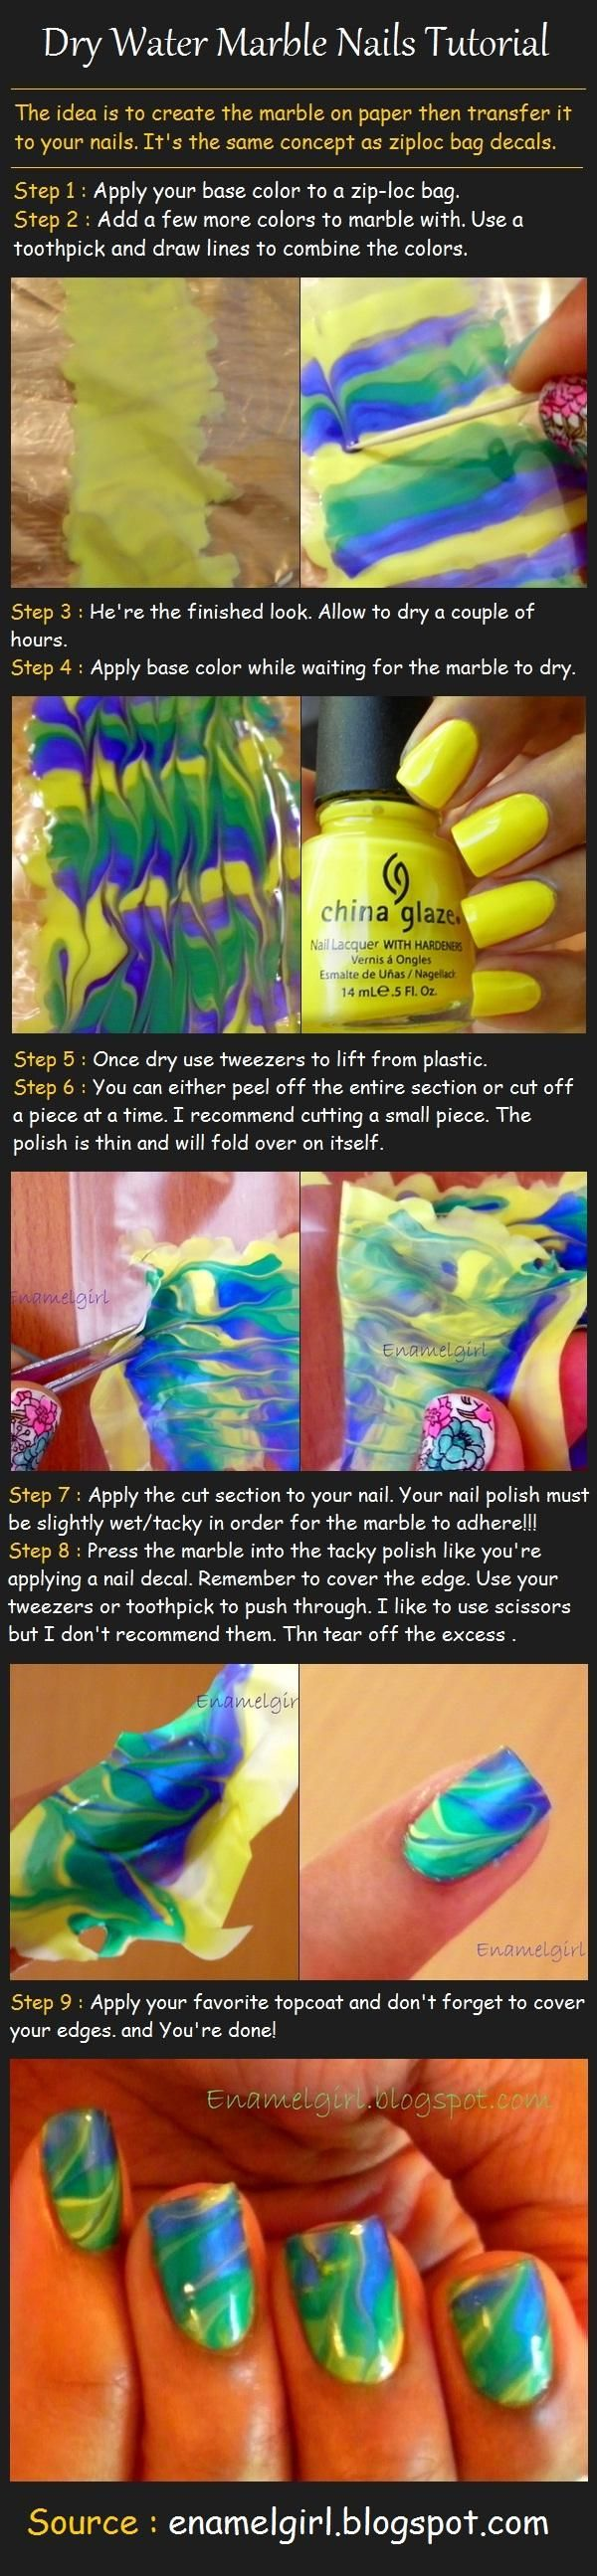 Dry Water Marble Nail Tutorial